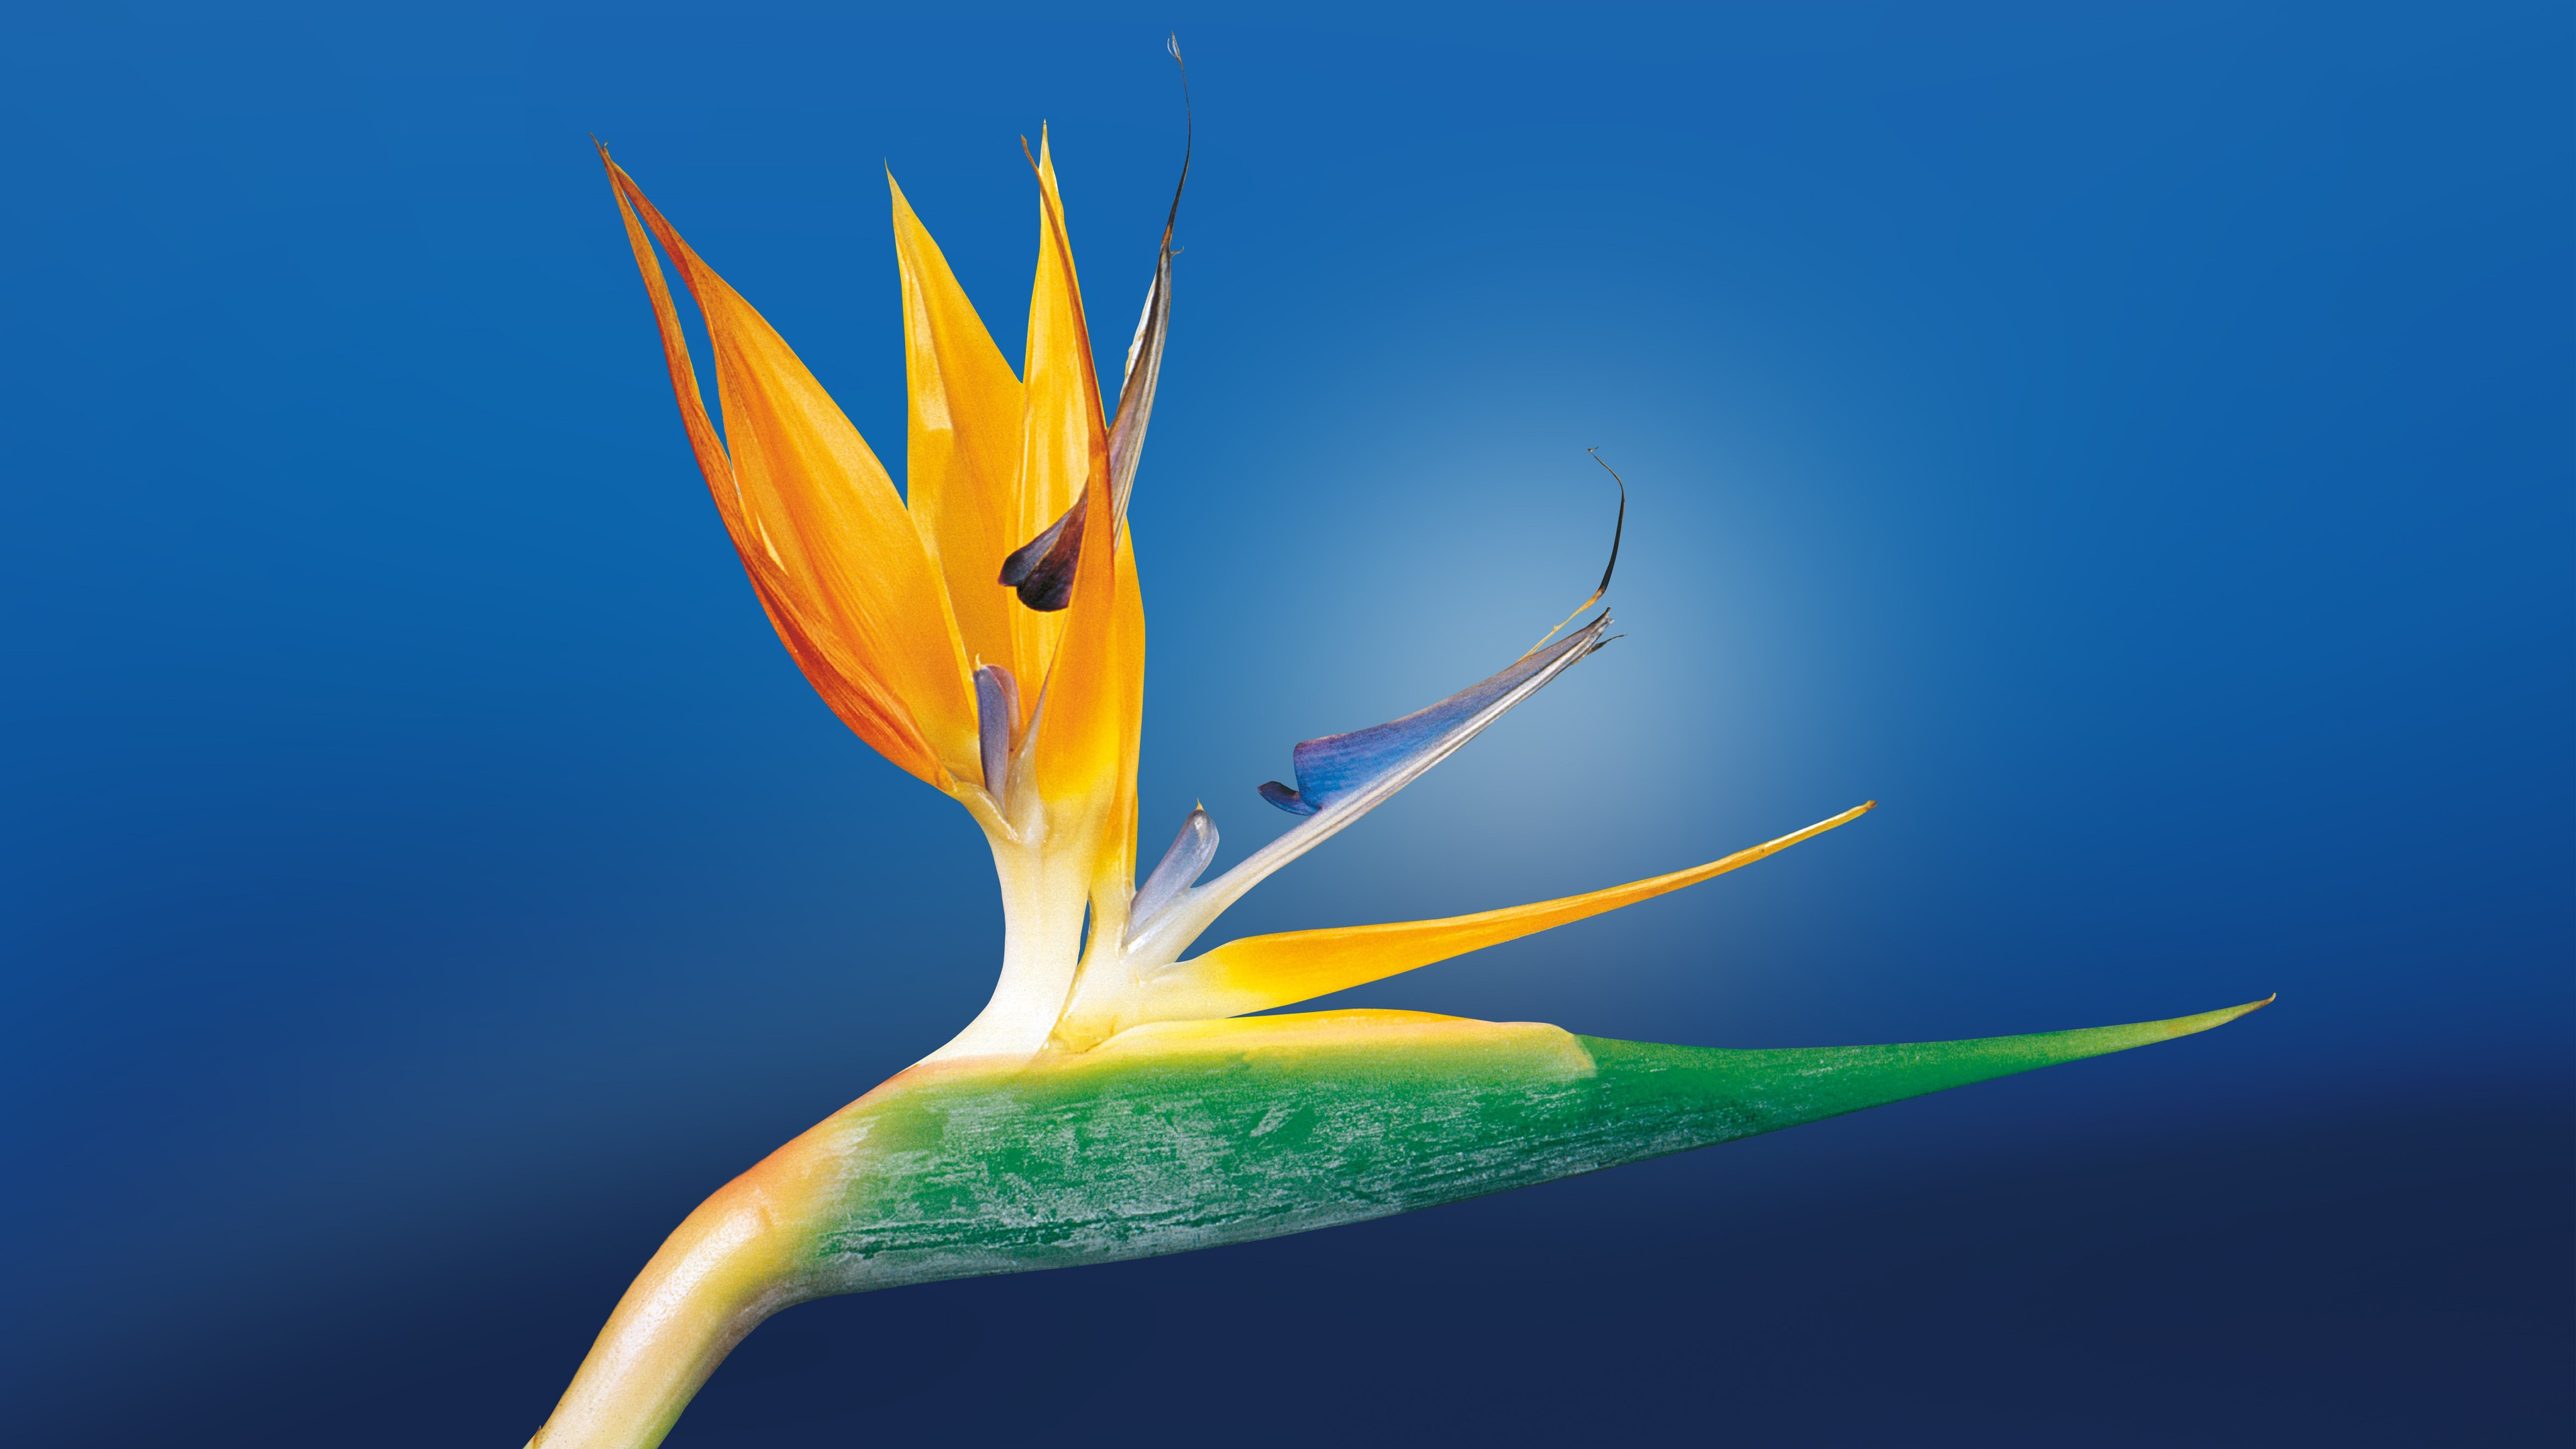 Bird of paradise hd flowers 4k wallpapers images backgrounds photos and pictures - Hd images of birds of paradise ...